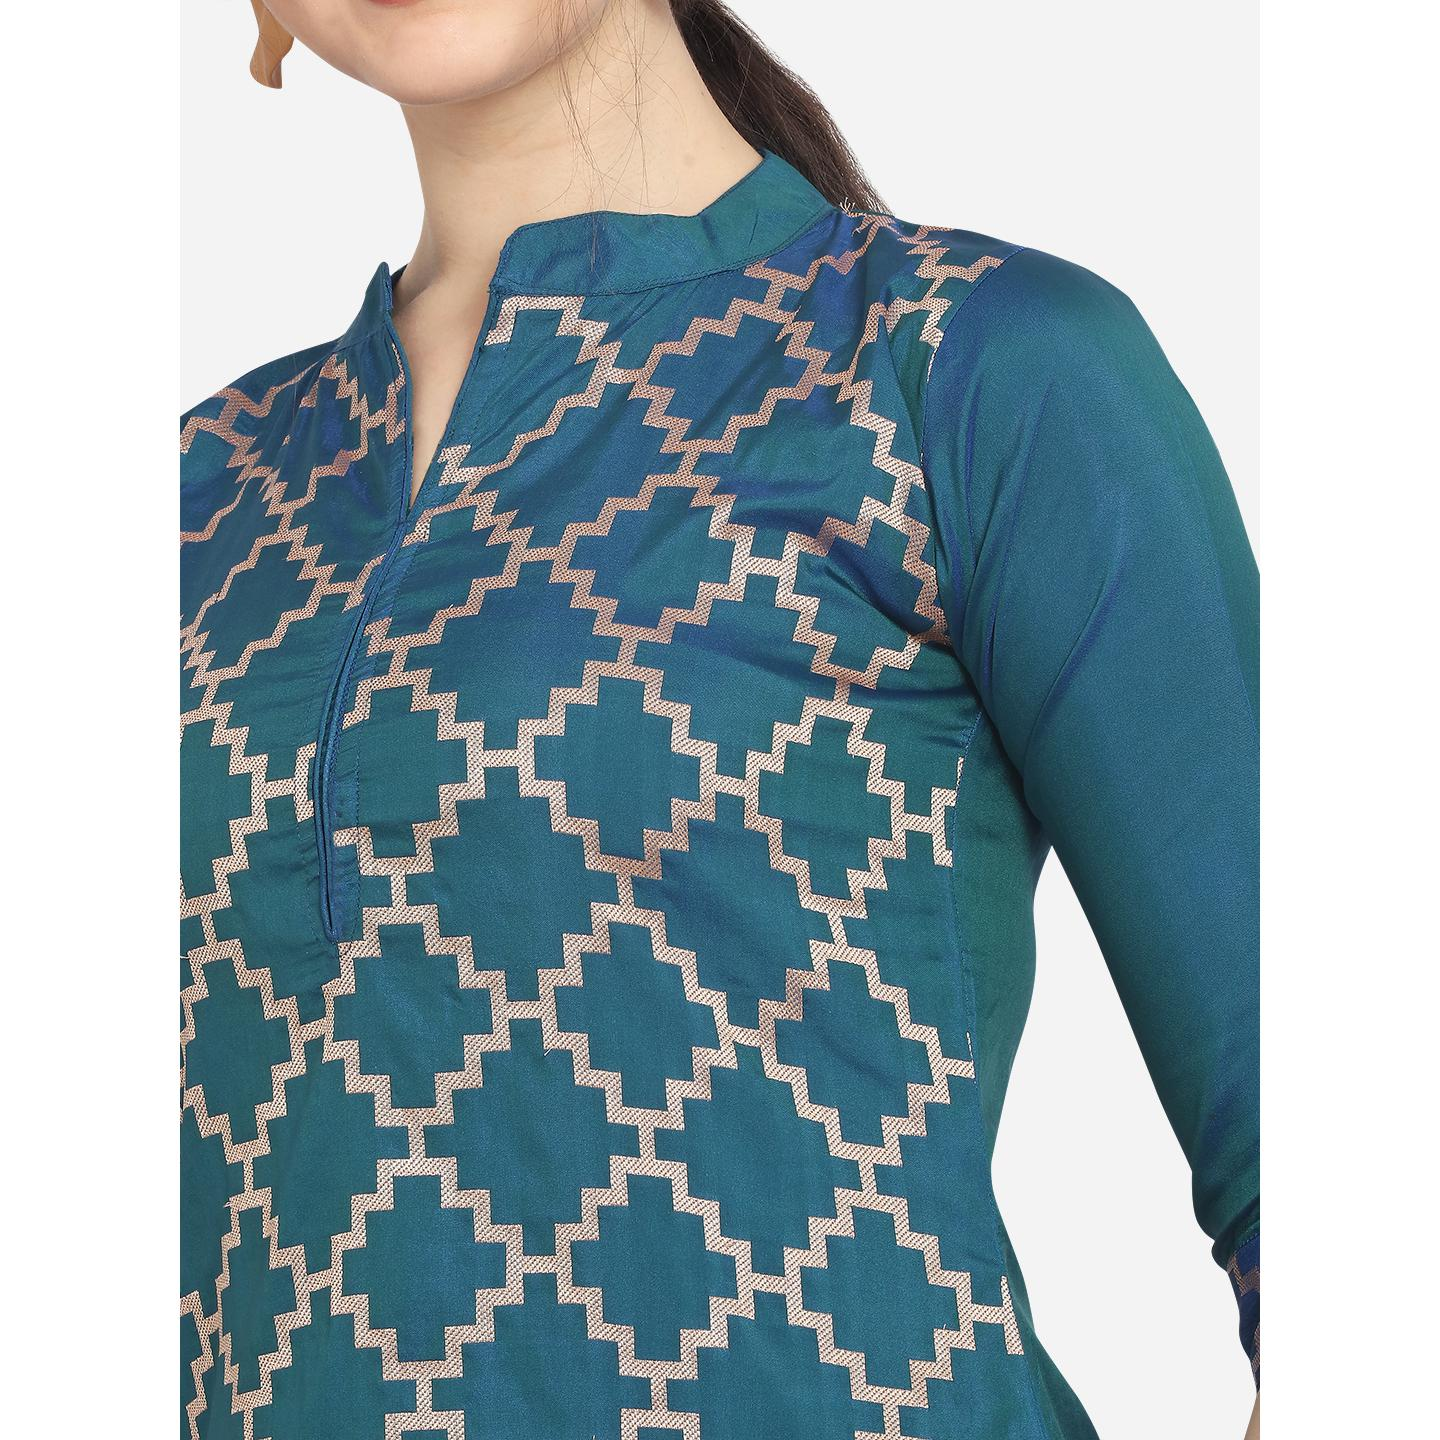 Refreshing Teal Blue Colored Festive Wear Woven Pure Jari Cotton Jacquard Dress Material